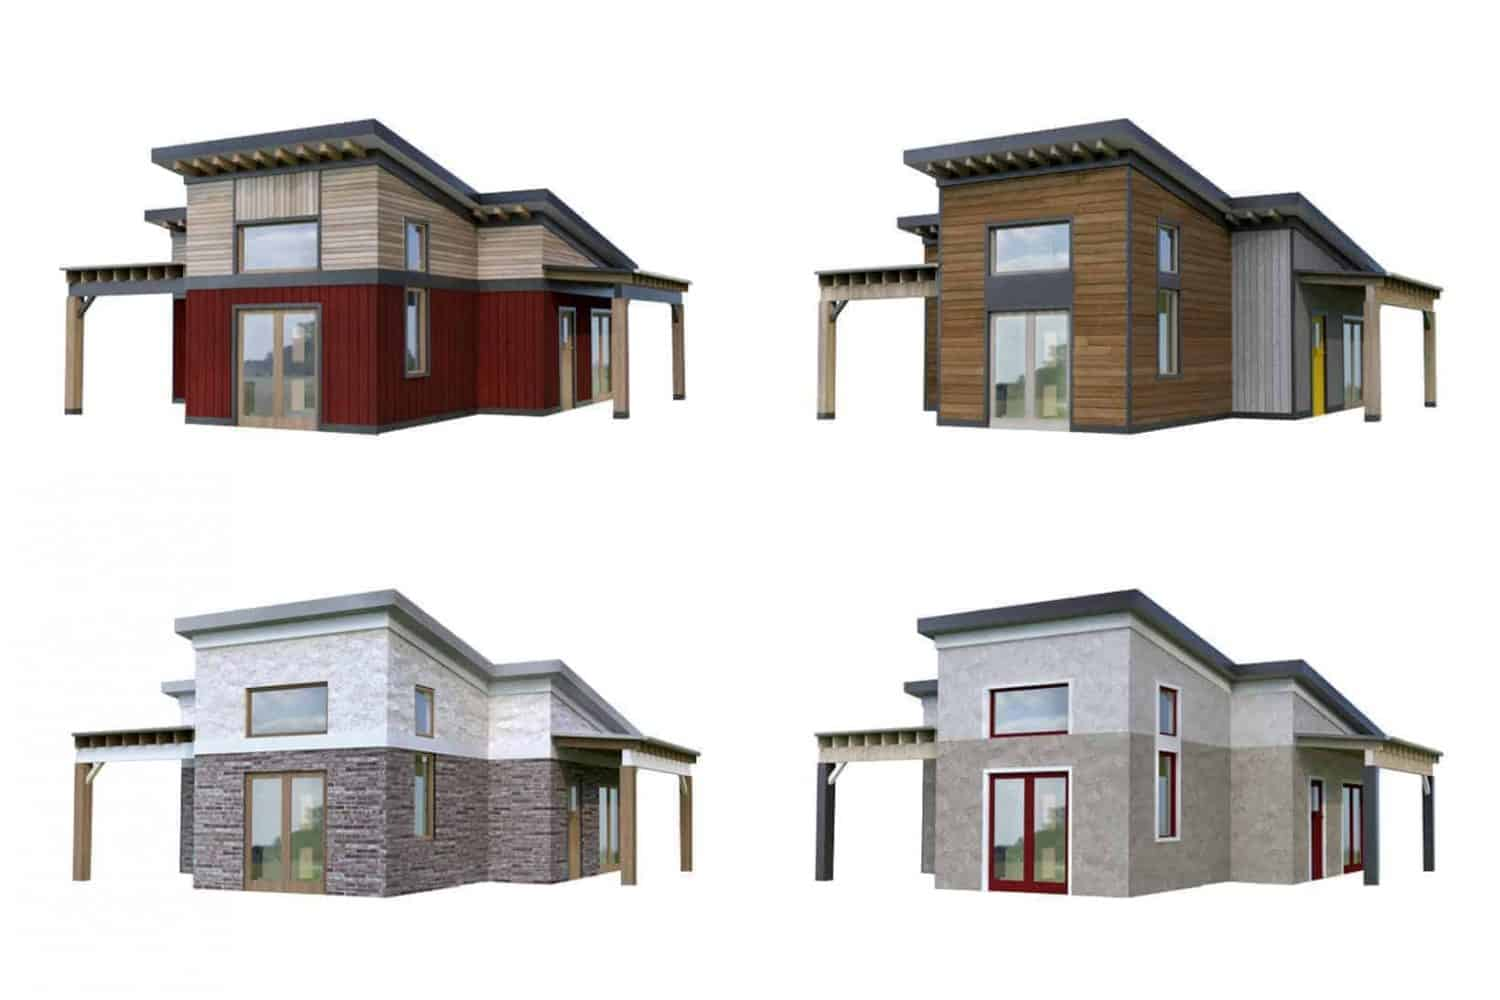 Guest house plans examples